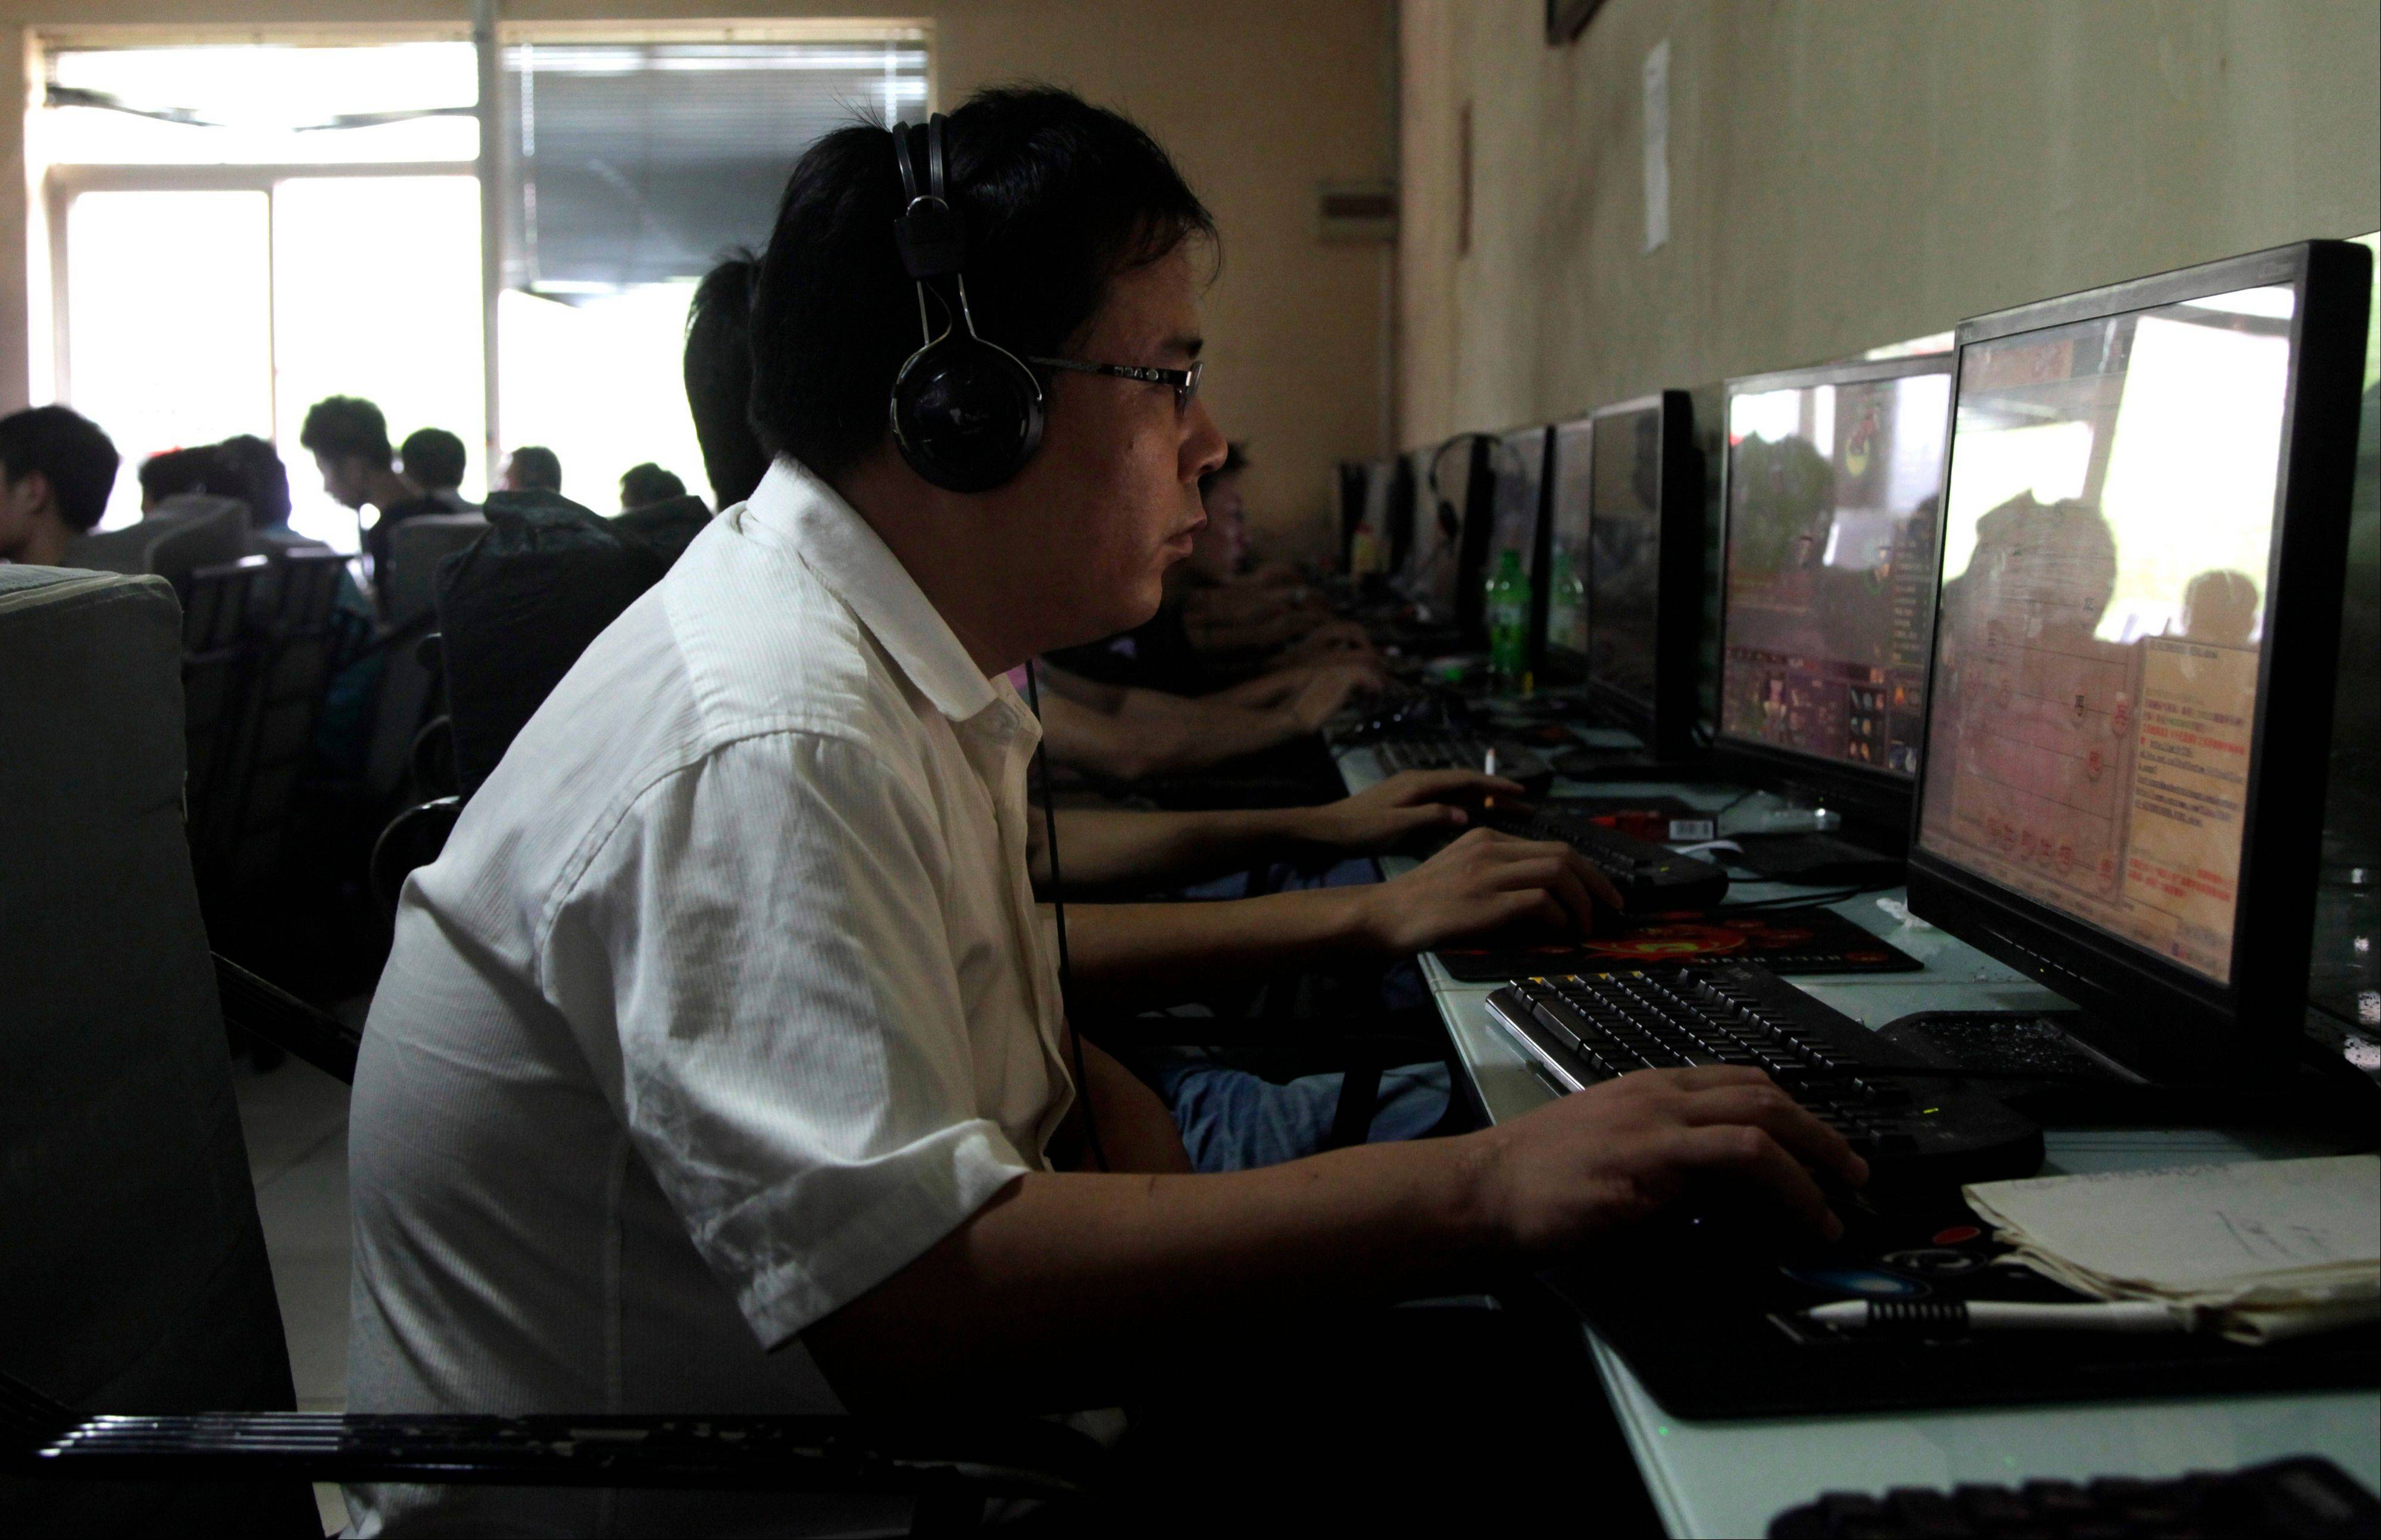 A Chinese man uses a computer at an Internet cafe in Beijing. China's new communist leaders are increasing already tight controls on Internet use and electronic publishing following a spate of embarrassing online reports about official abuses.